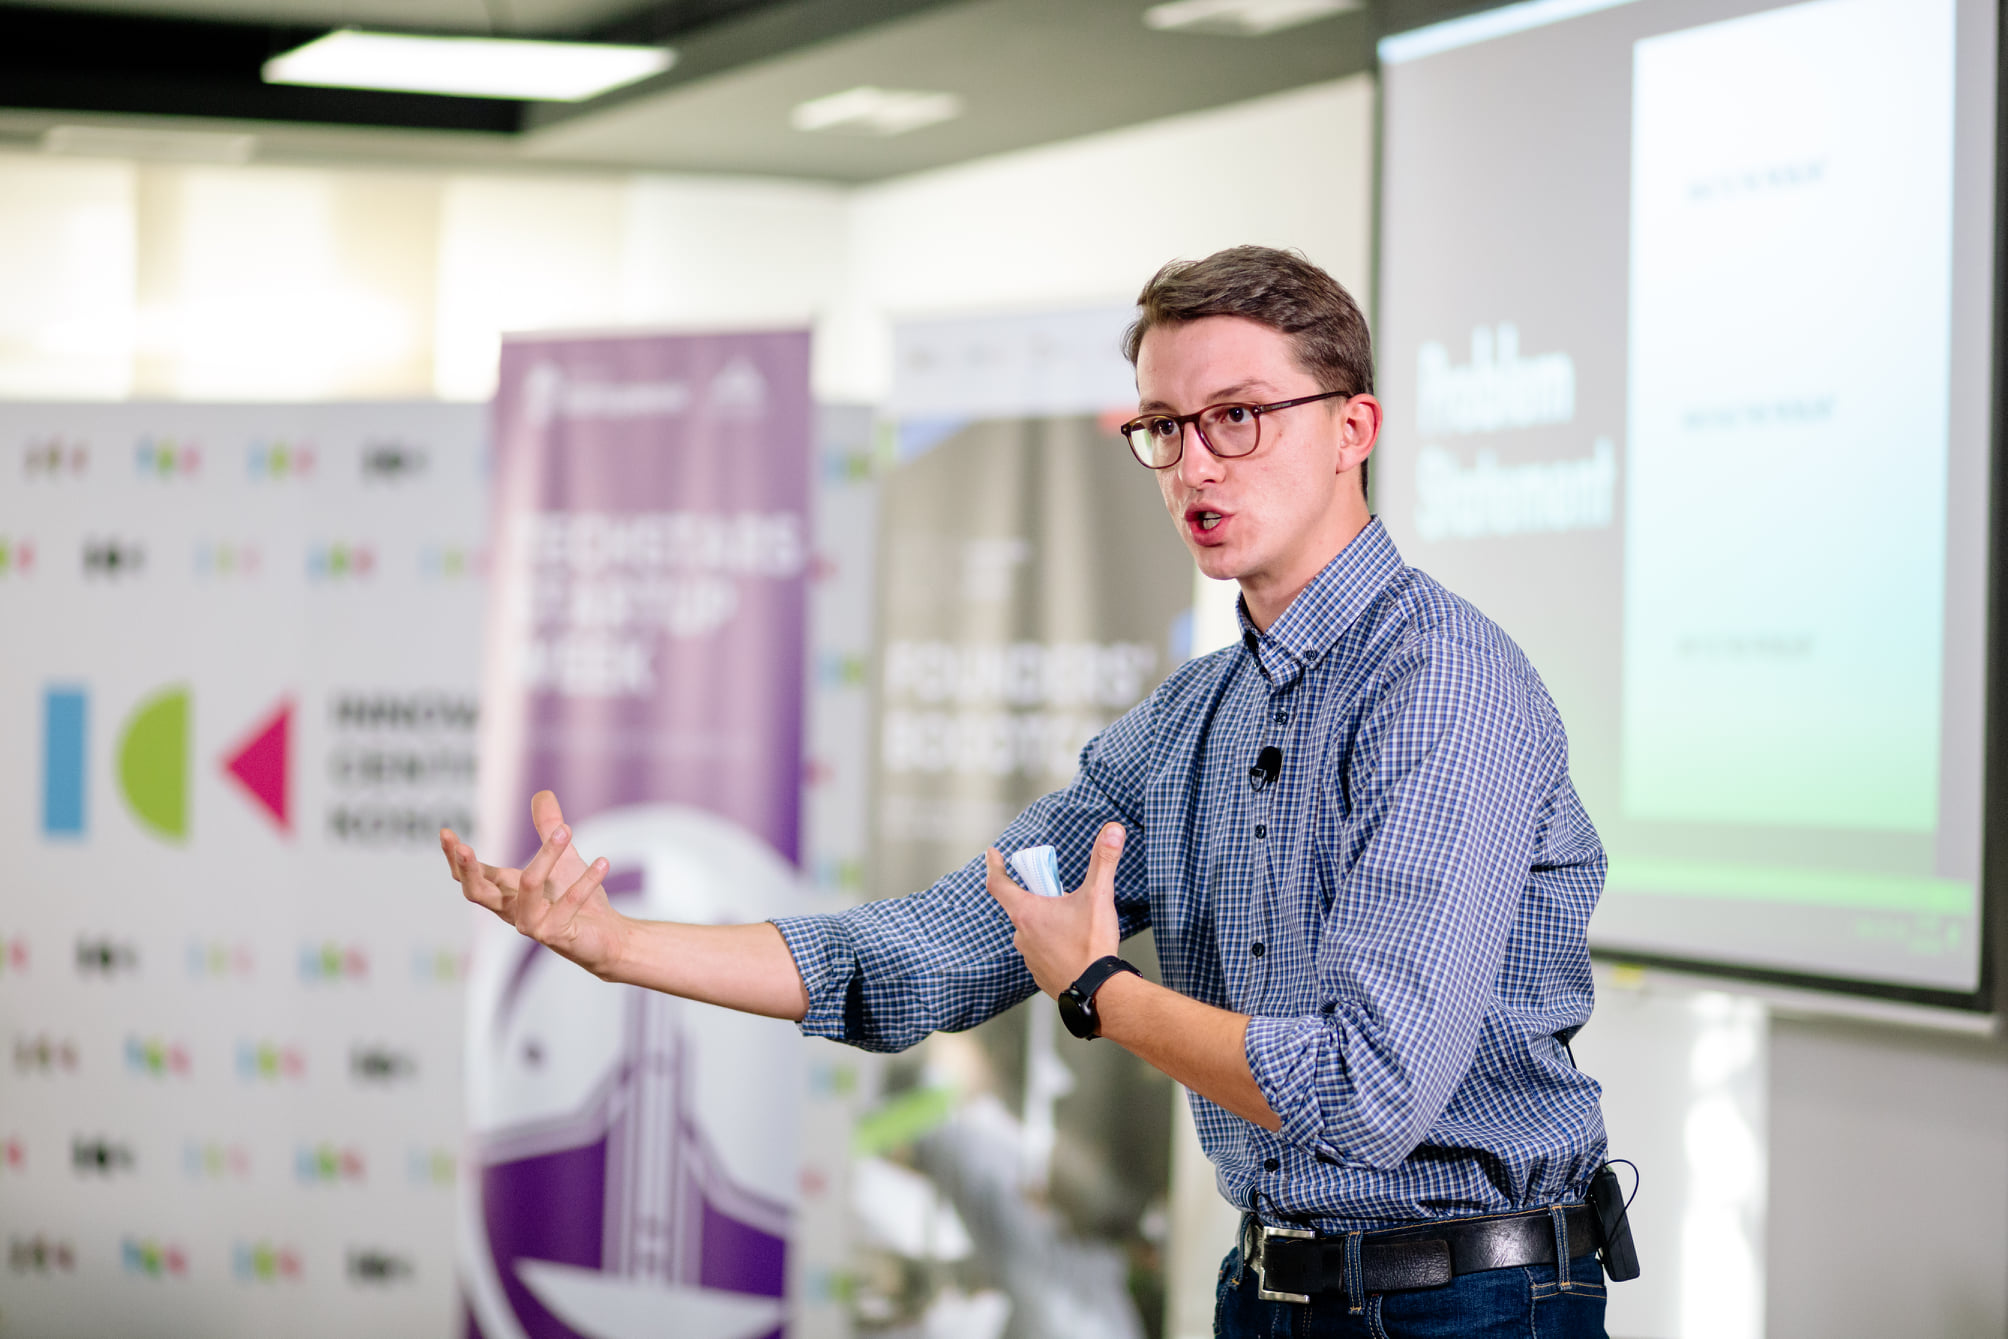 Founder's Bootcamp Day 1: A Professional How-To for Running Your Business the Best Way Today